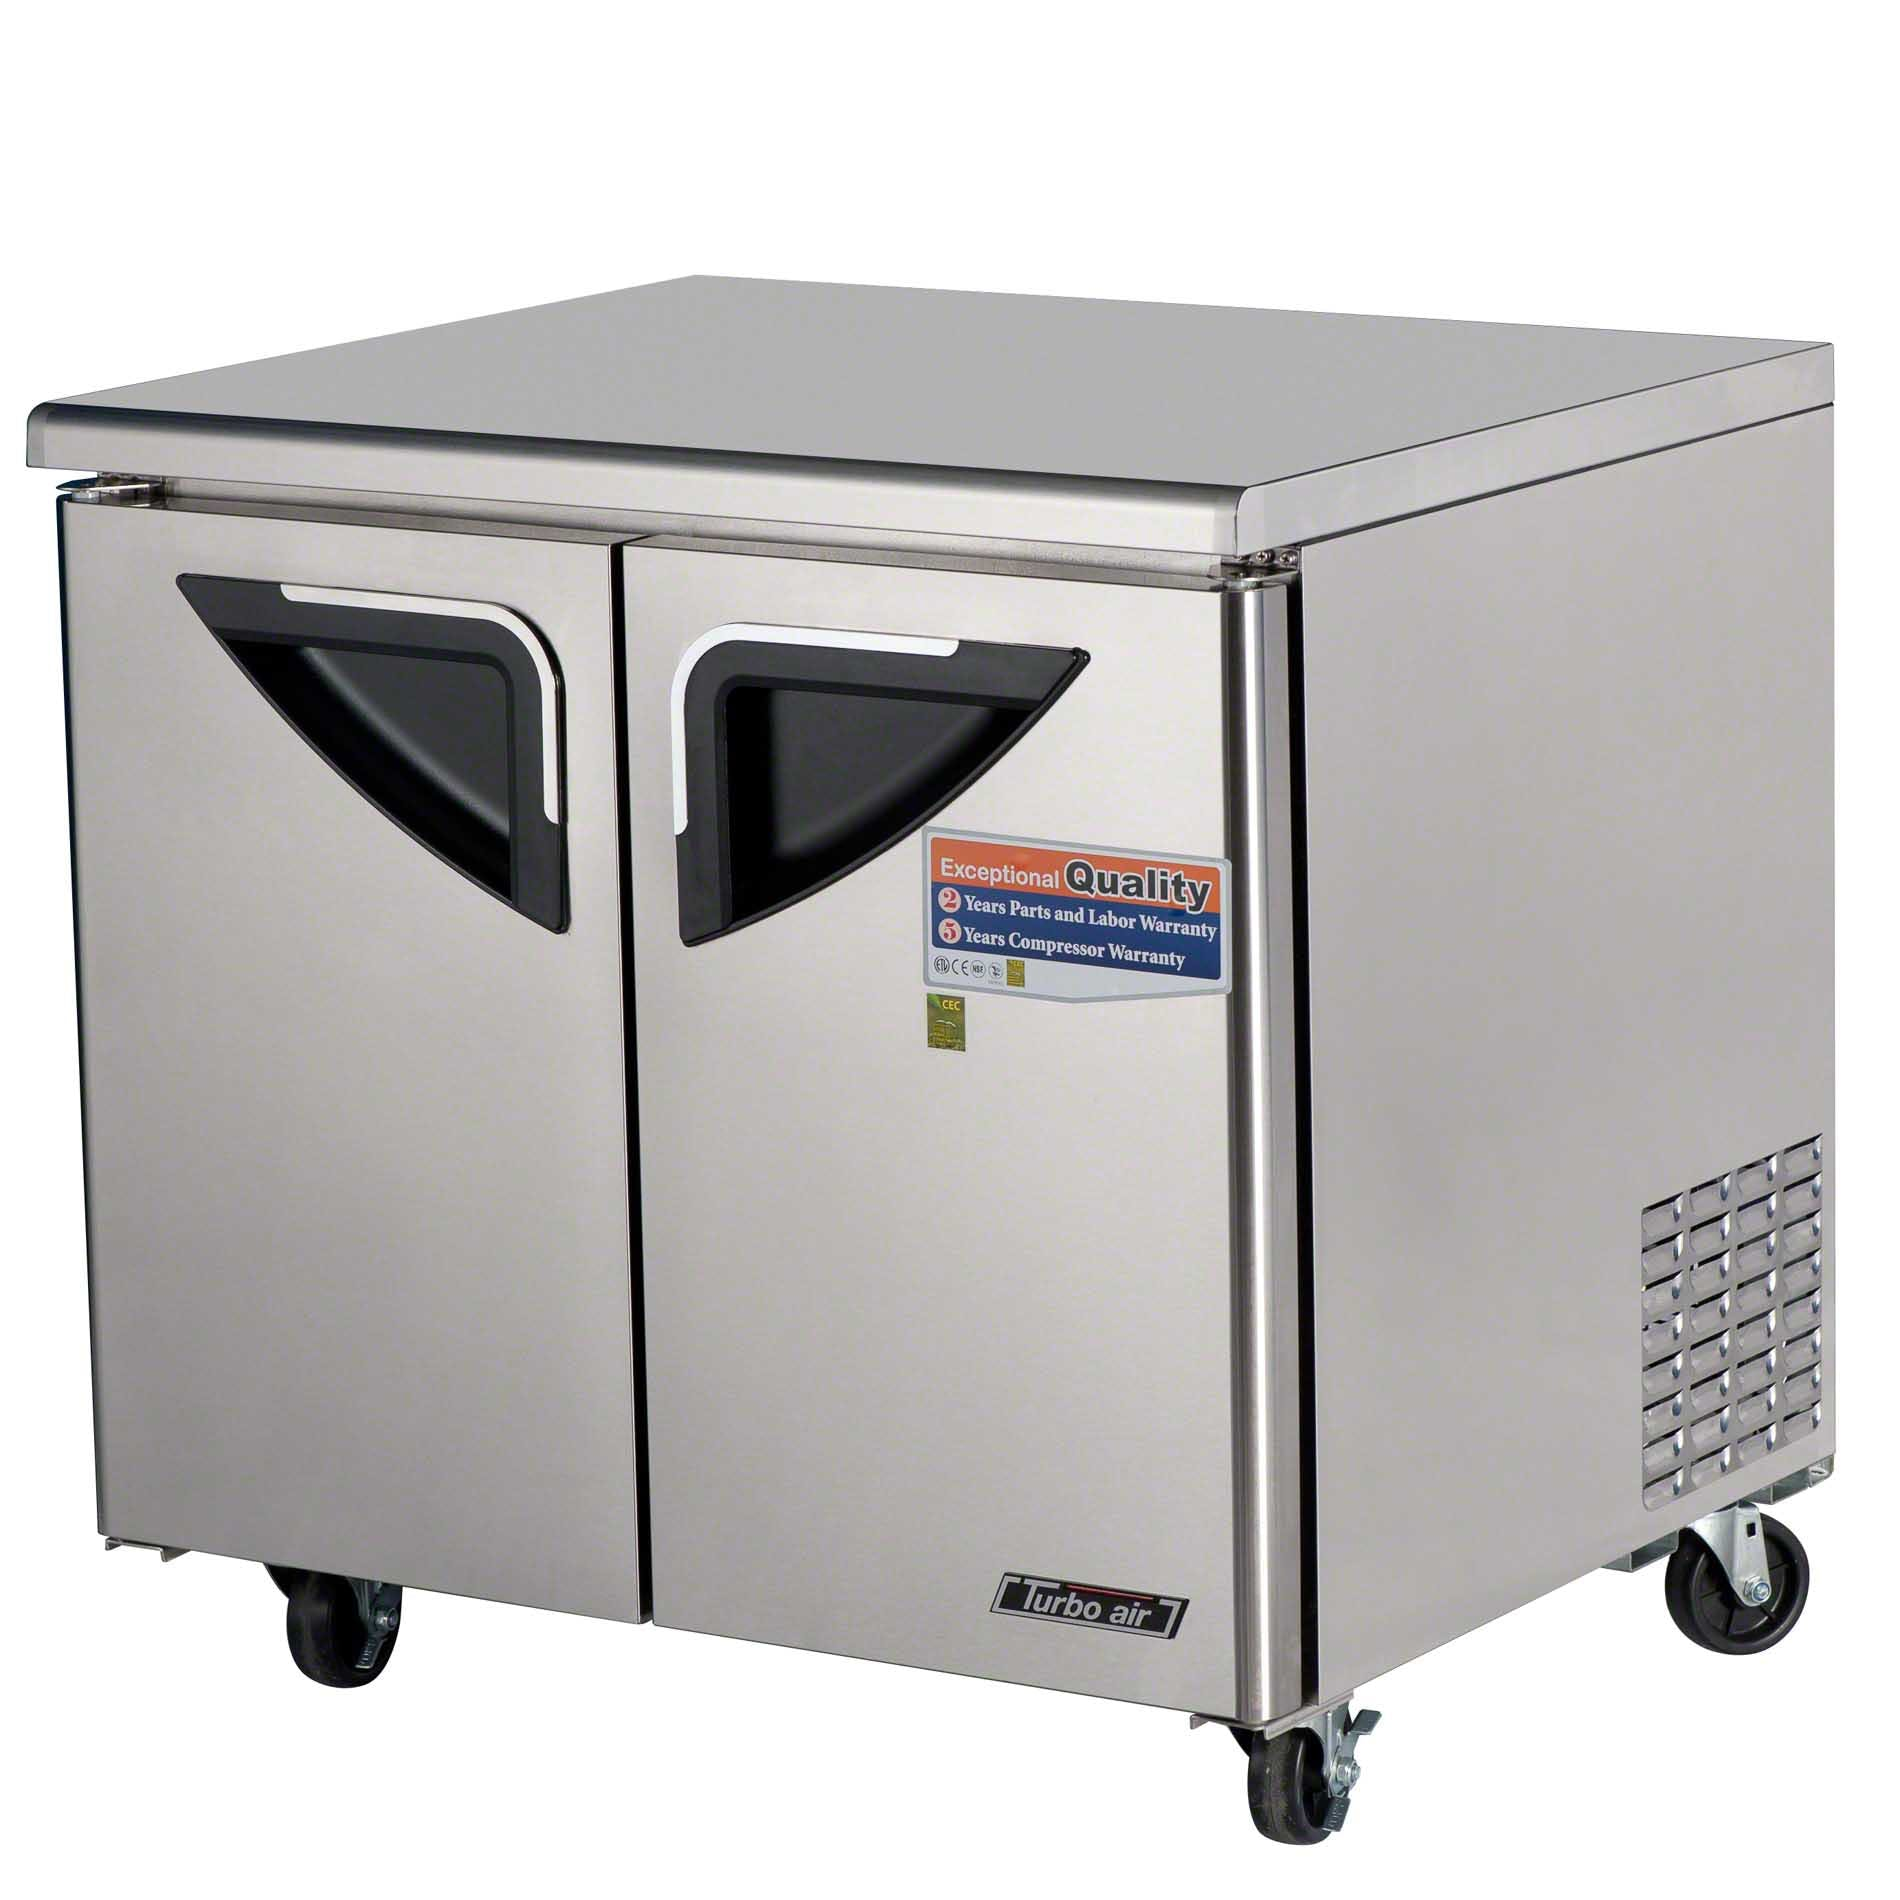 """Turbo Air - TUR-36SD 36"""" Undercounter Refrigerator – Super Deluxe Series - sold by Food Service Warehouse"""